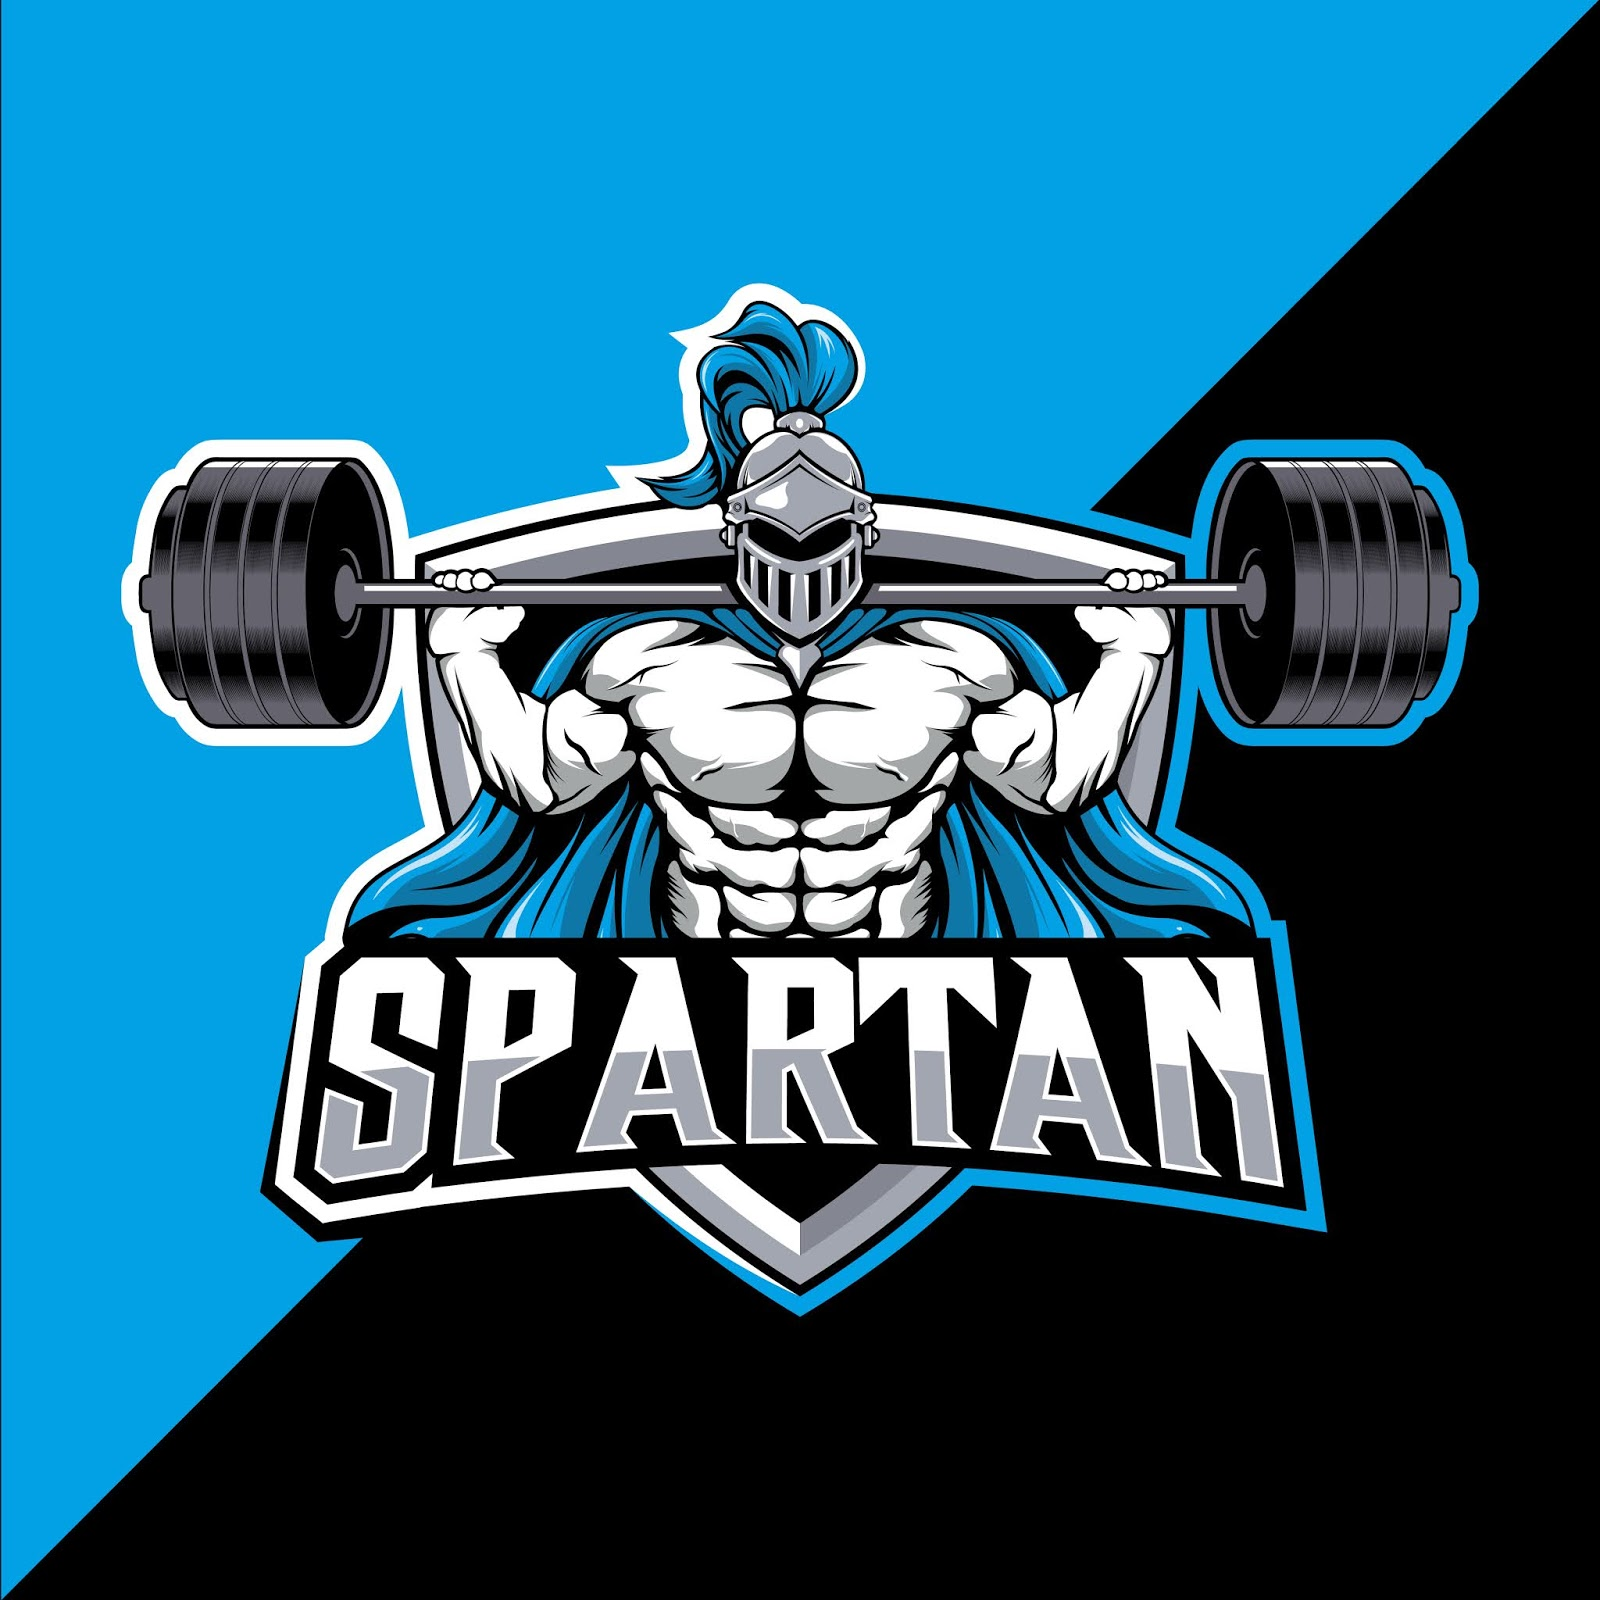 Spartan Mascot Fitness Esport Logo Design Free Download Vector CDR, AI, EPS and PNG Formats